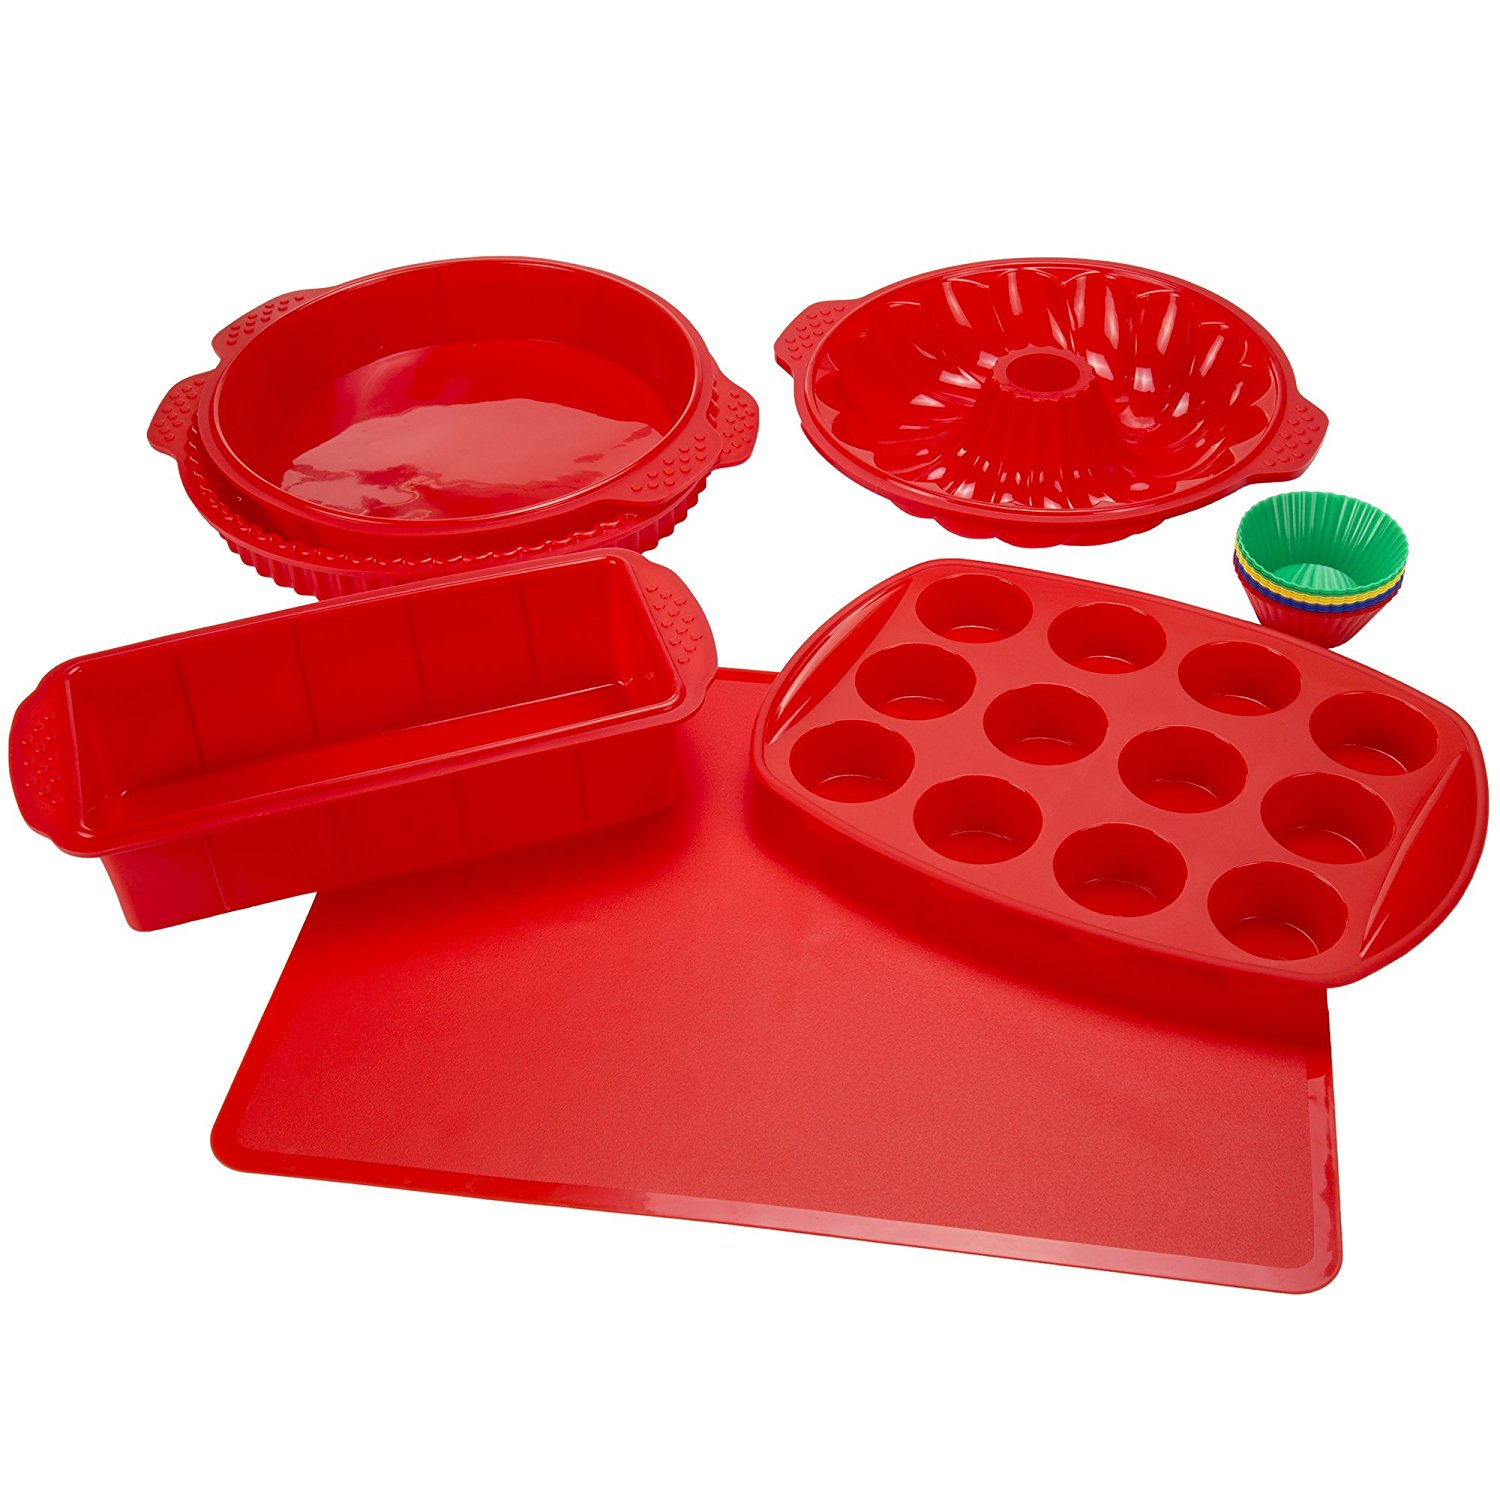 18 Piece Silicone Bakeware Set, Red..., By Classic Cuisine Ship from US by